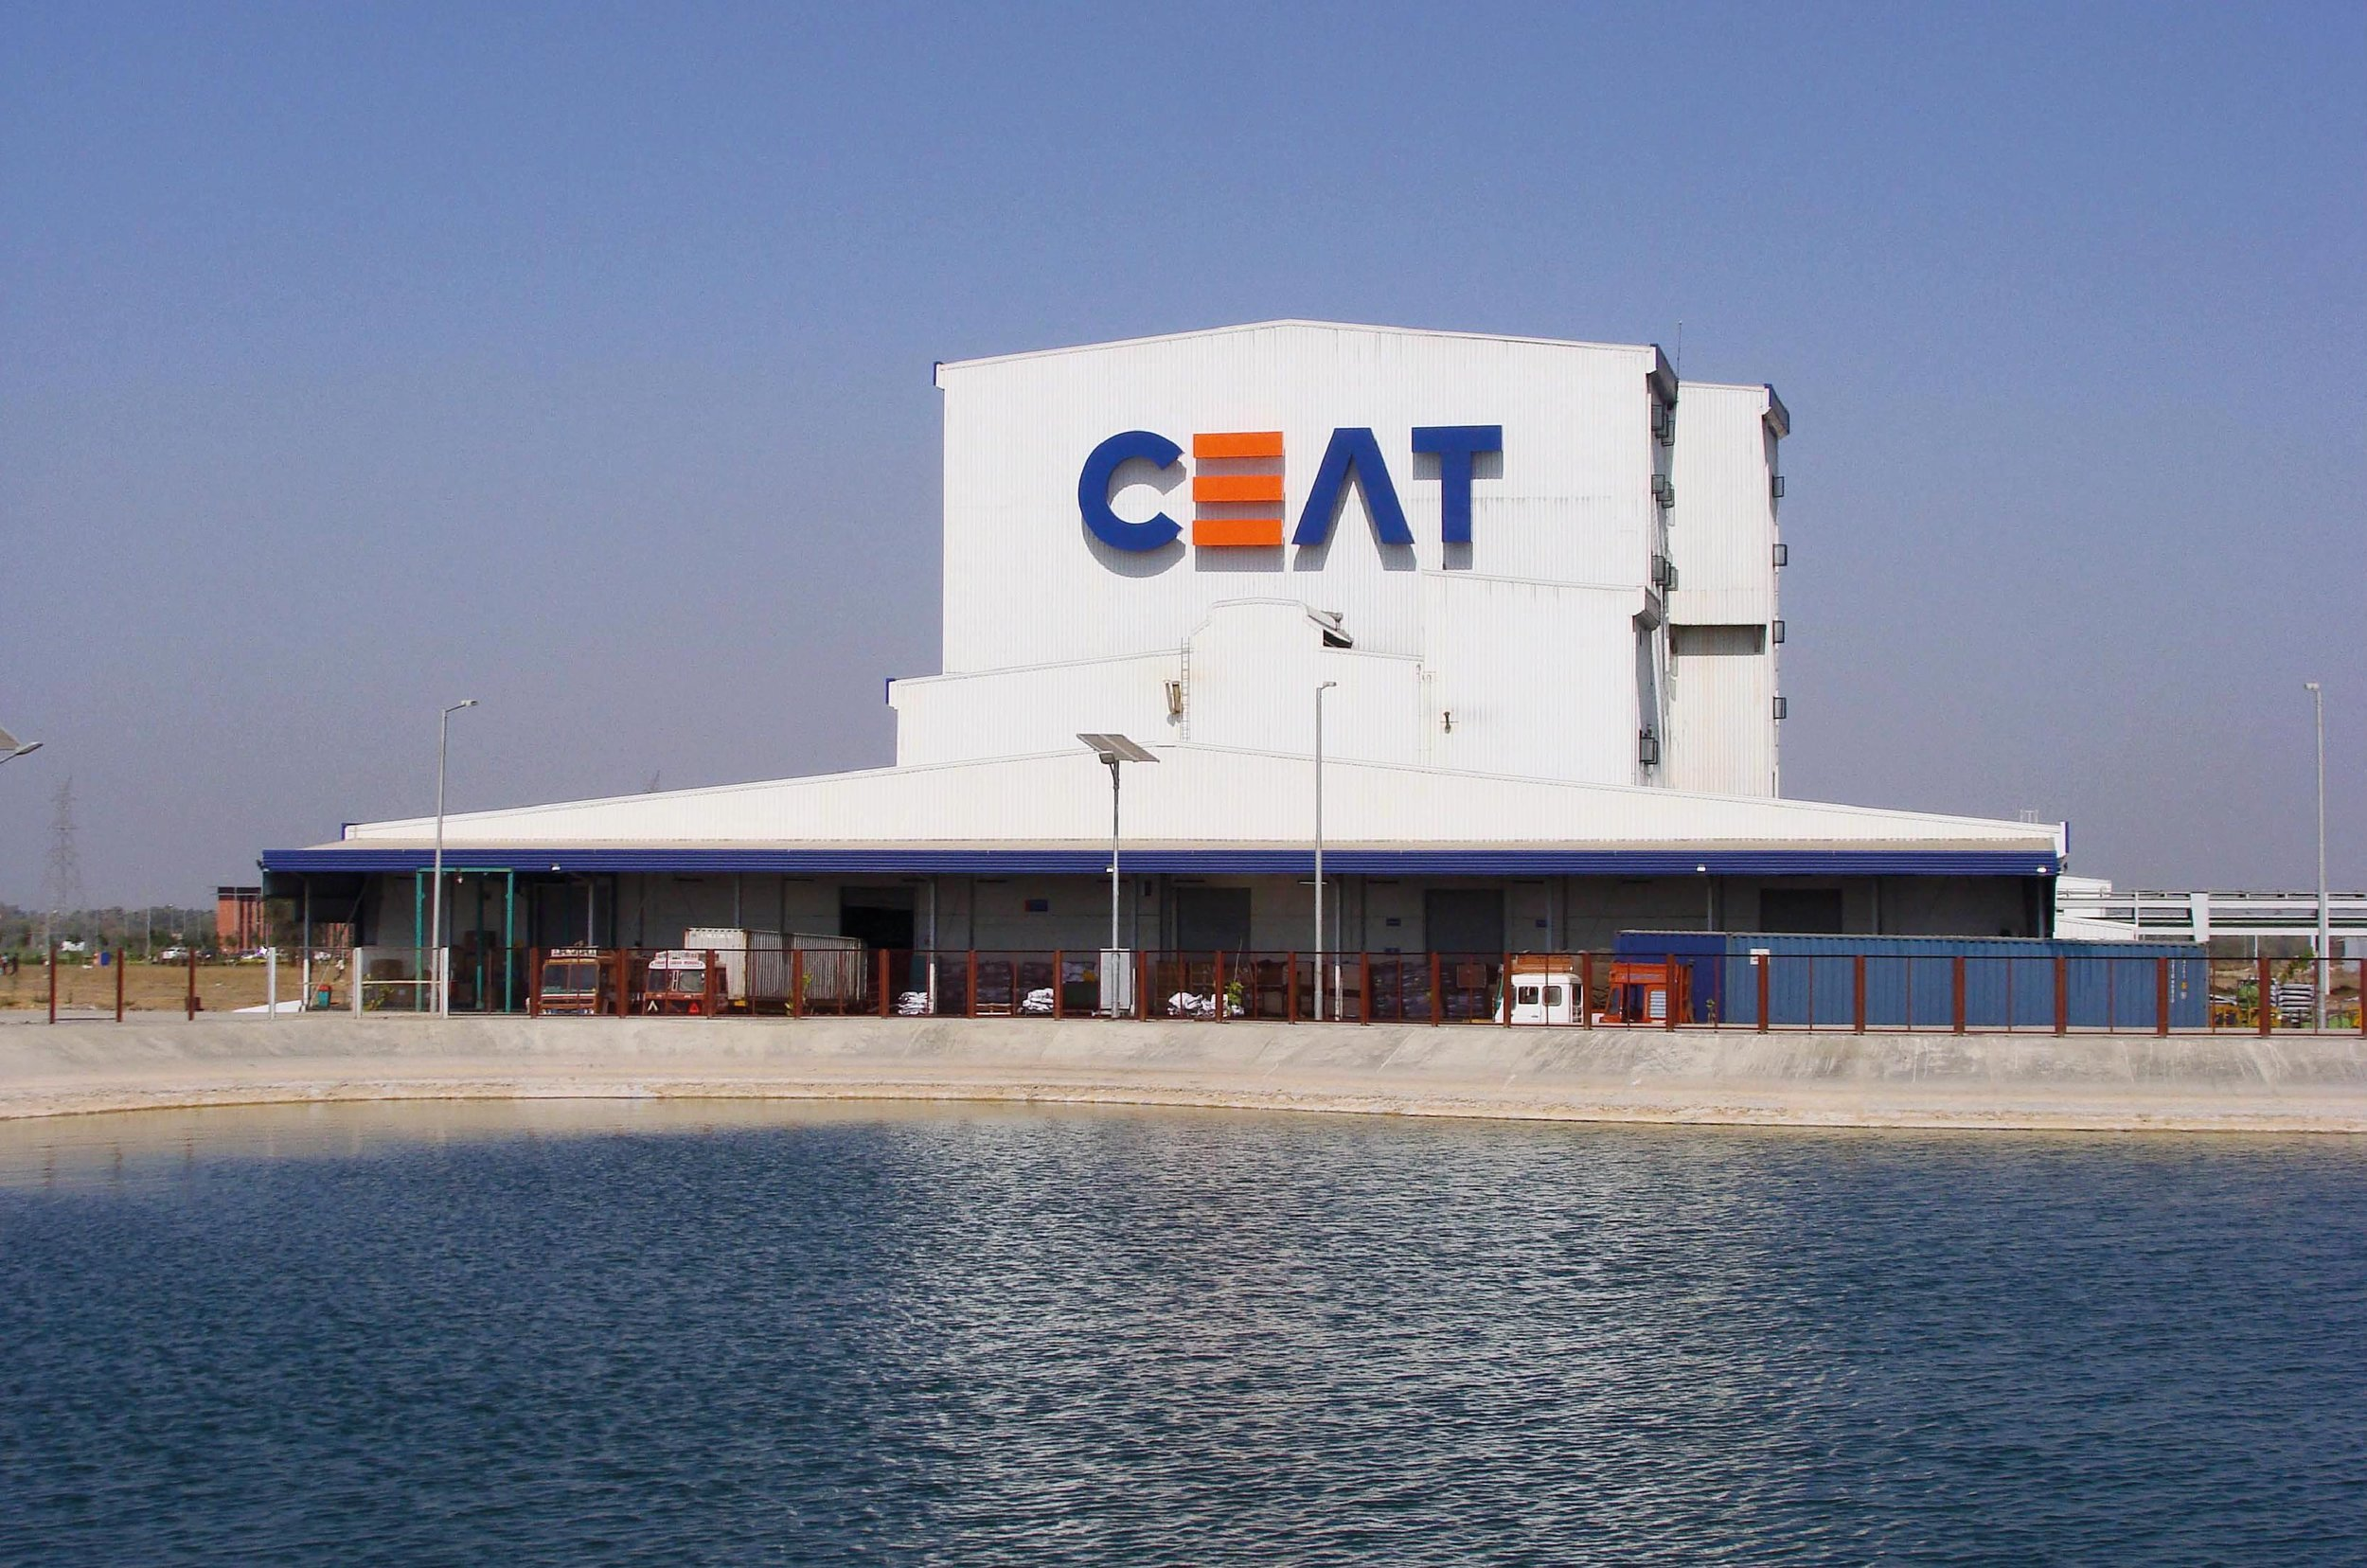 CEAT factory Signages_Branded Spaces_Elephant Design_8.jpg